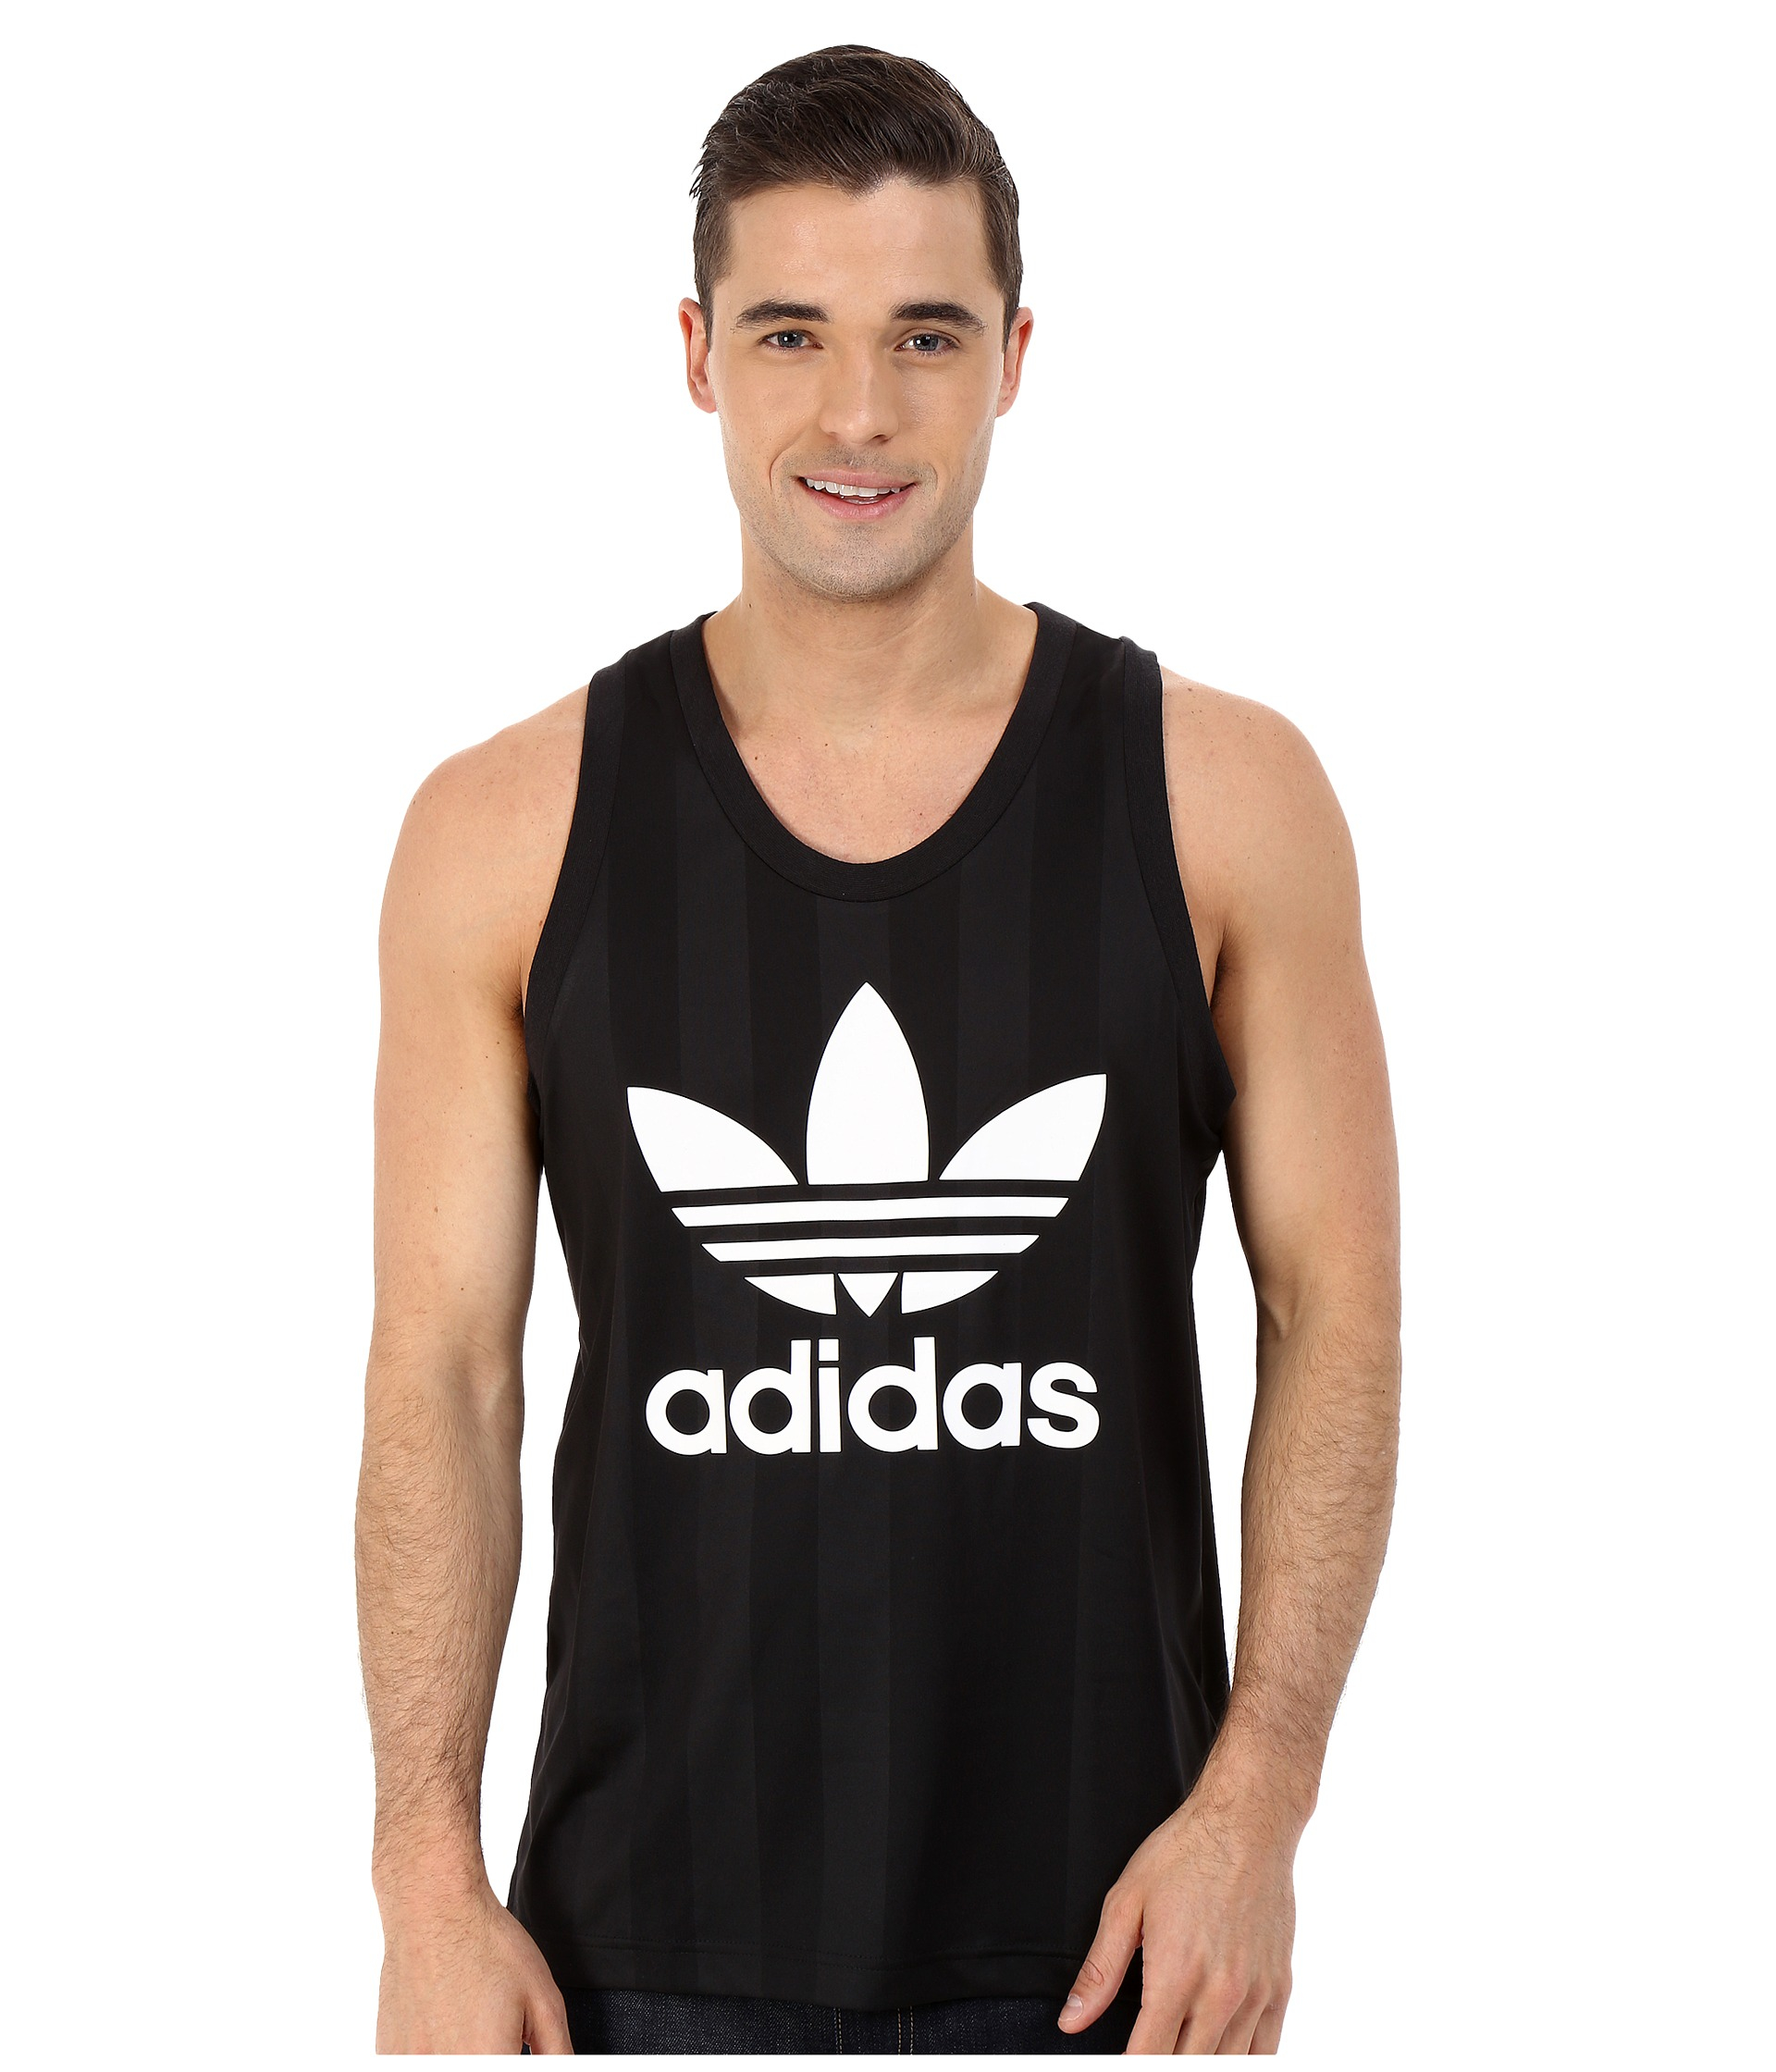 new concept 59d04 1c43f adidas Originals Trefoil Tank Top in Black for Men - Lyst